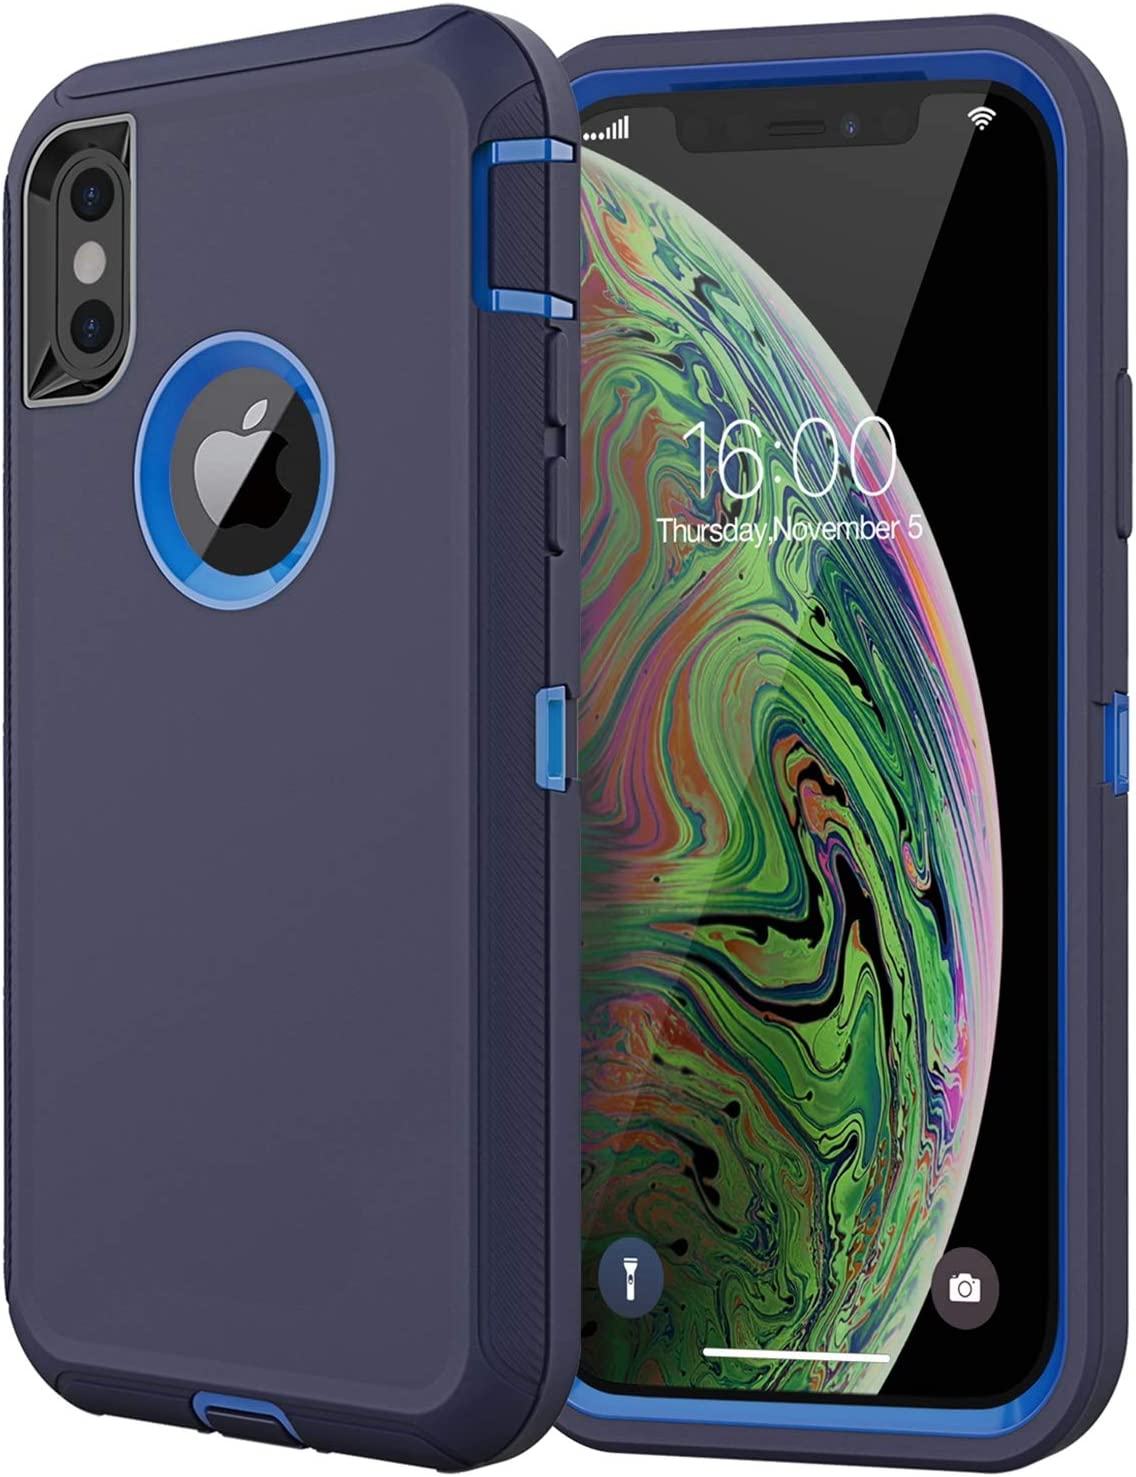 Diverbox Compatible with iPhone Xs Max Case, [Shockproof] [Dropproof] [Dust-Proof],Heavy Duty Protection Phone Case Cover for Apple iPhone Xs Max (Navy Blue)